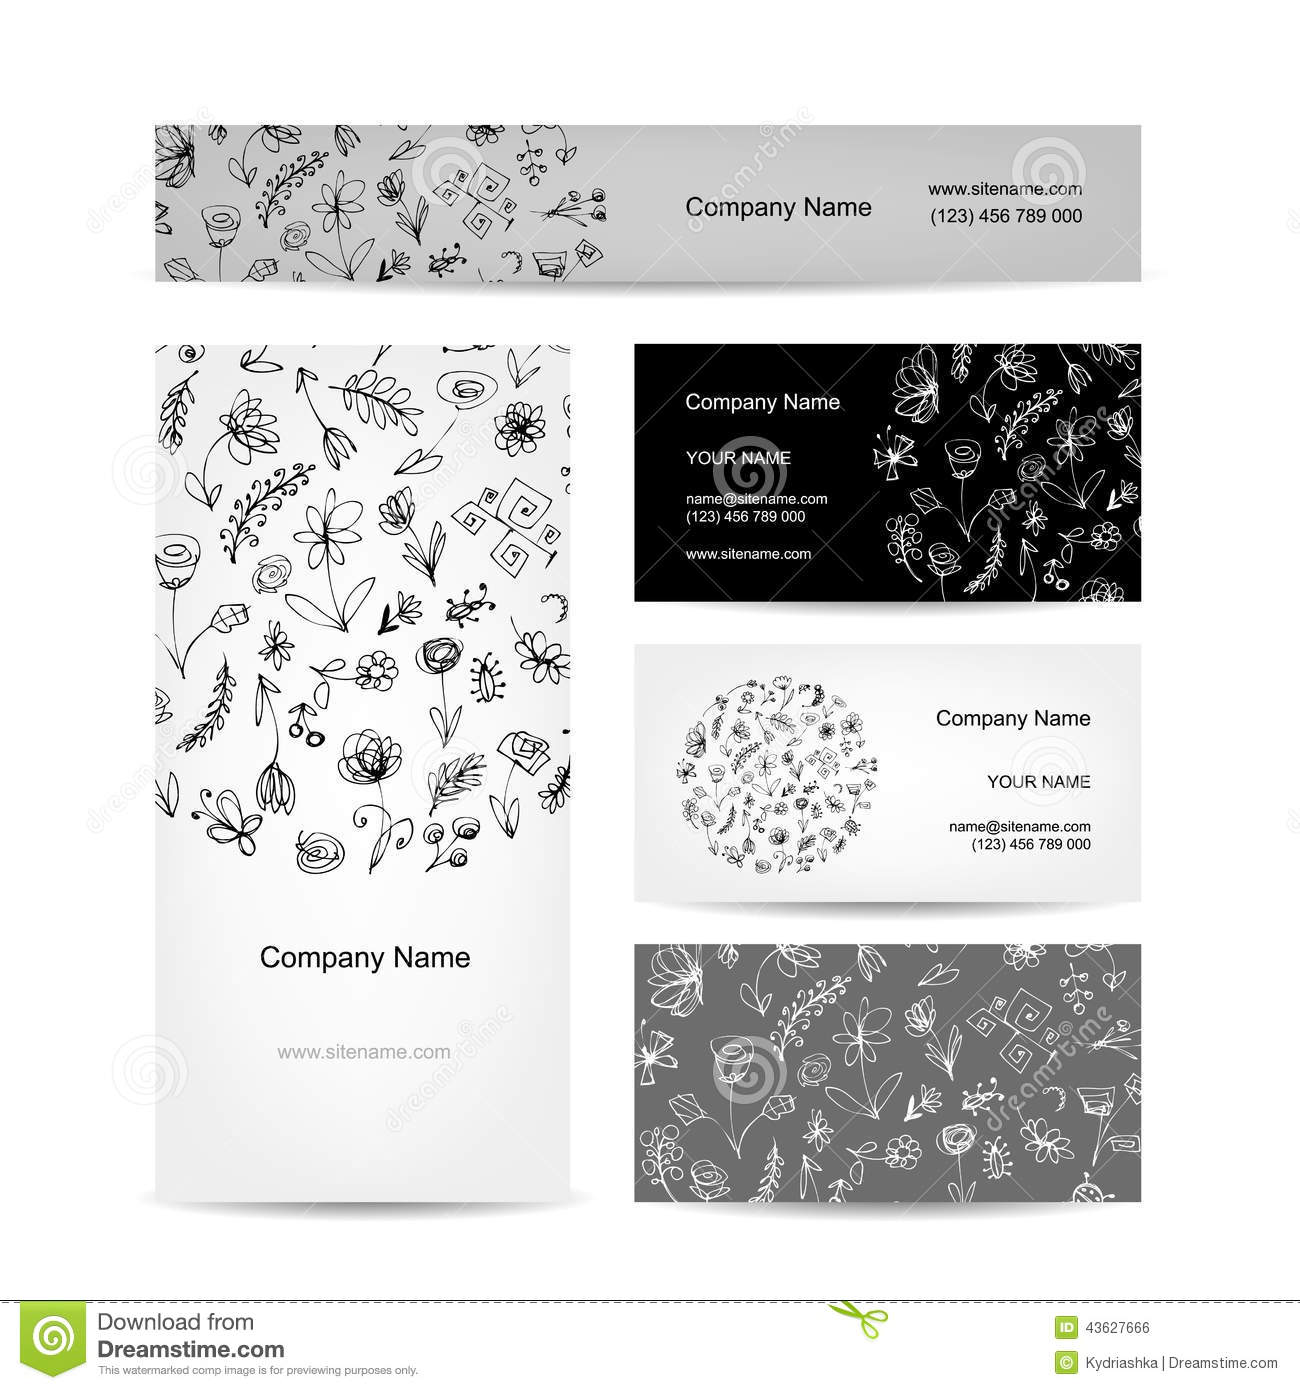 Business cards collection floral design cartoon vector for Business card collection